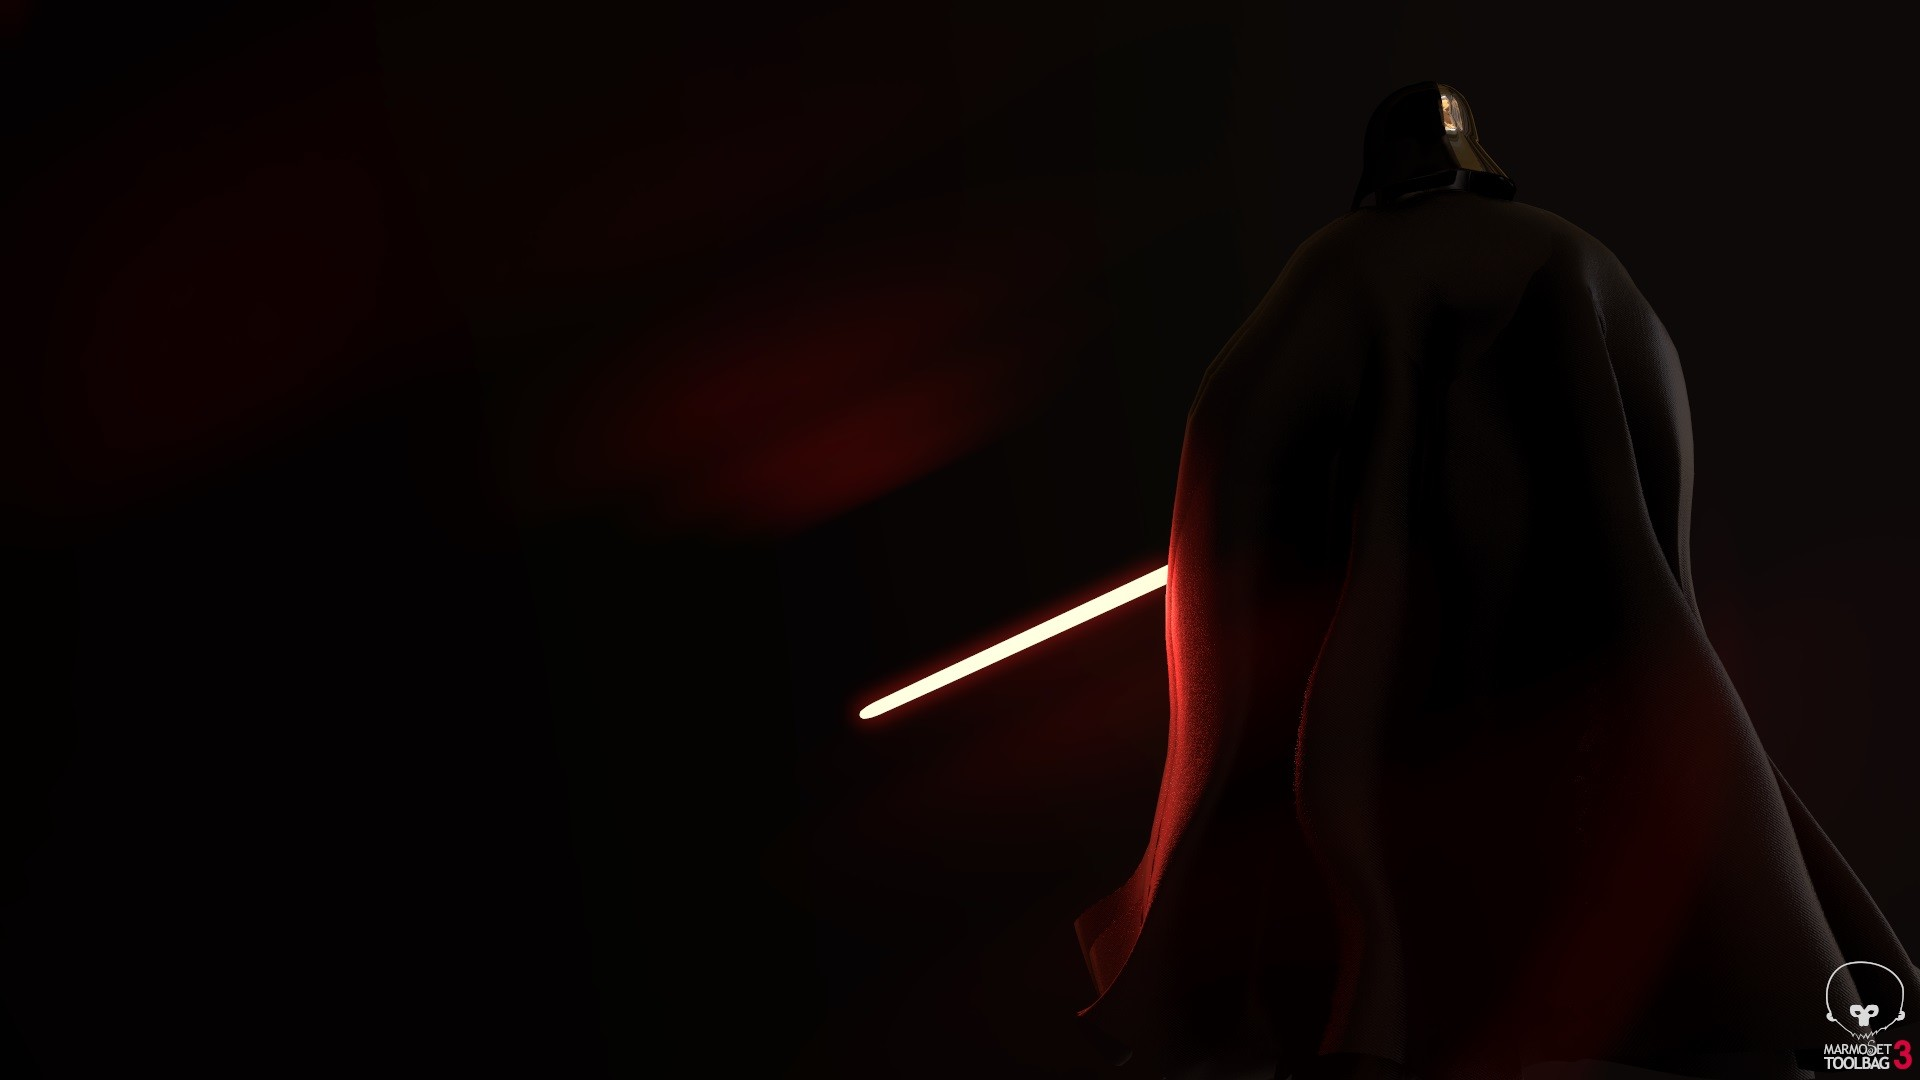 Wallpaper Engine Darth Vader Posted By Michelle Cunningham